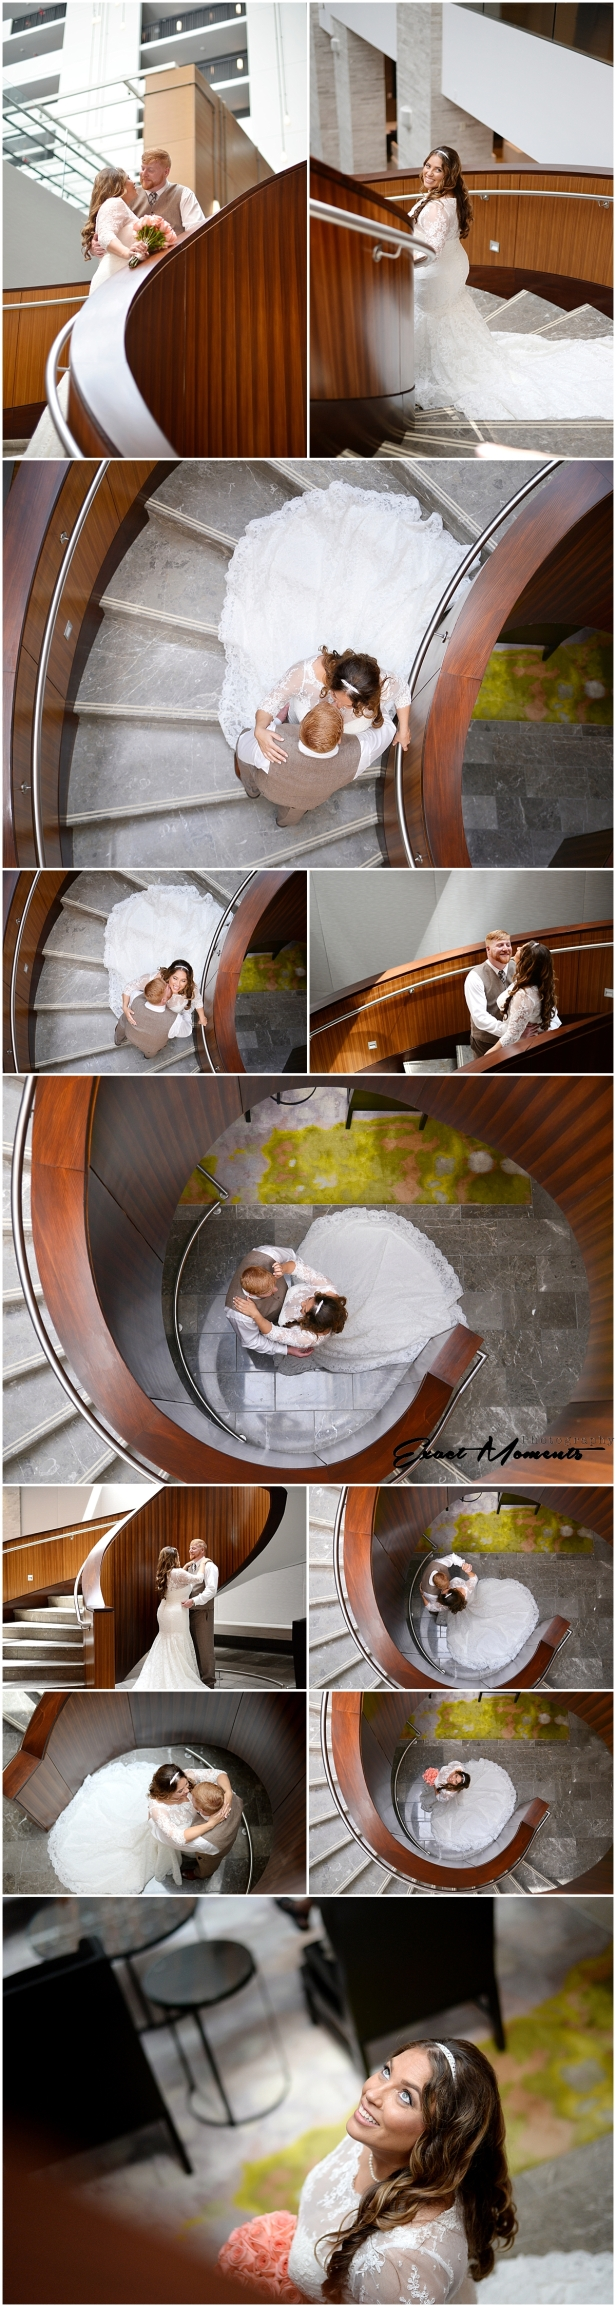 photography-session-in-hilton-downtown-columbus